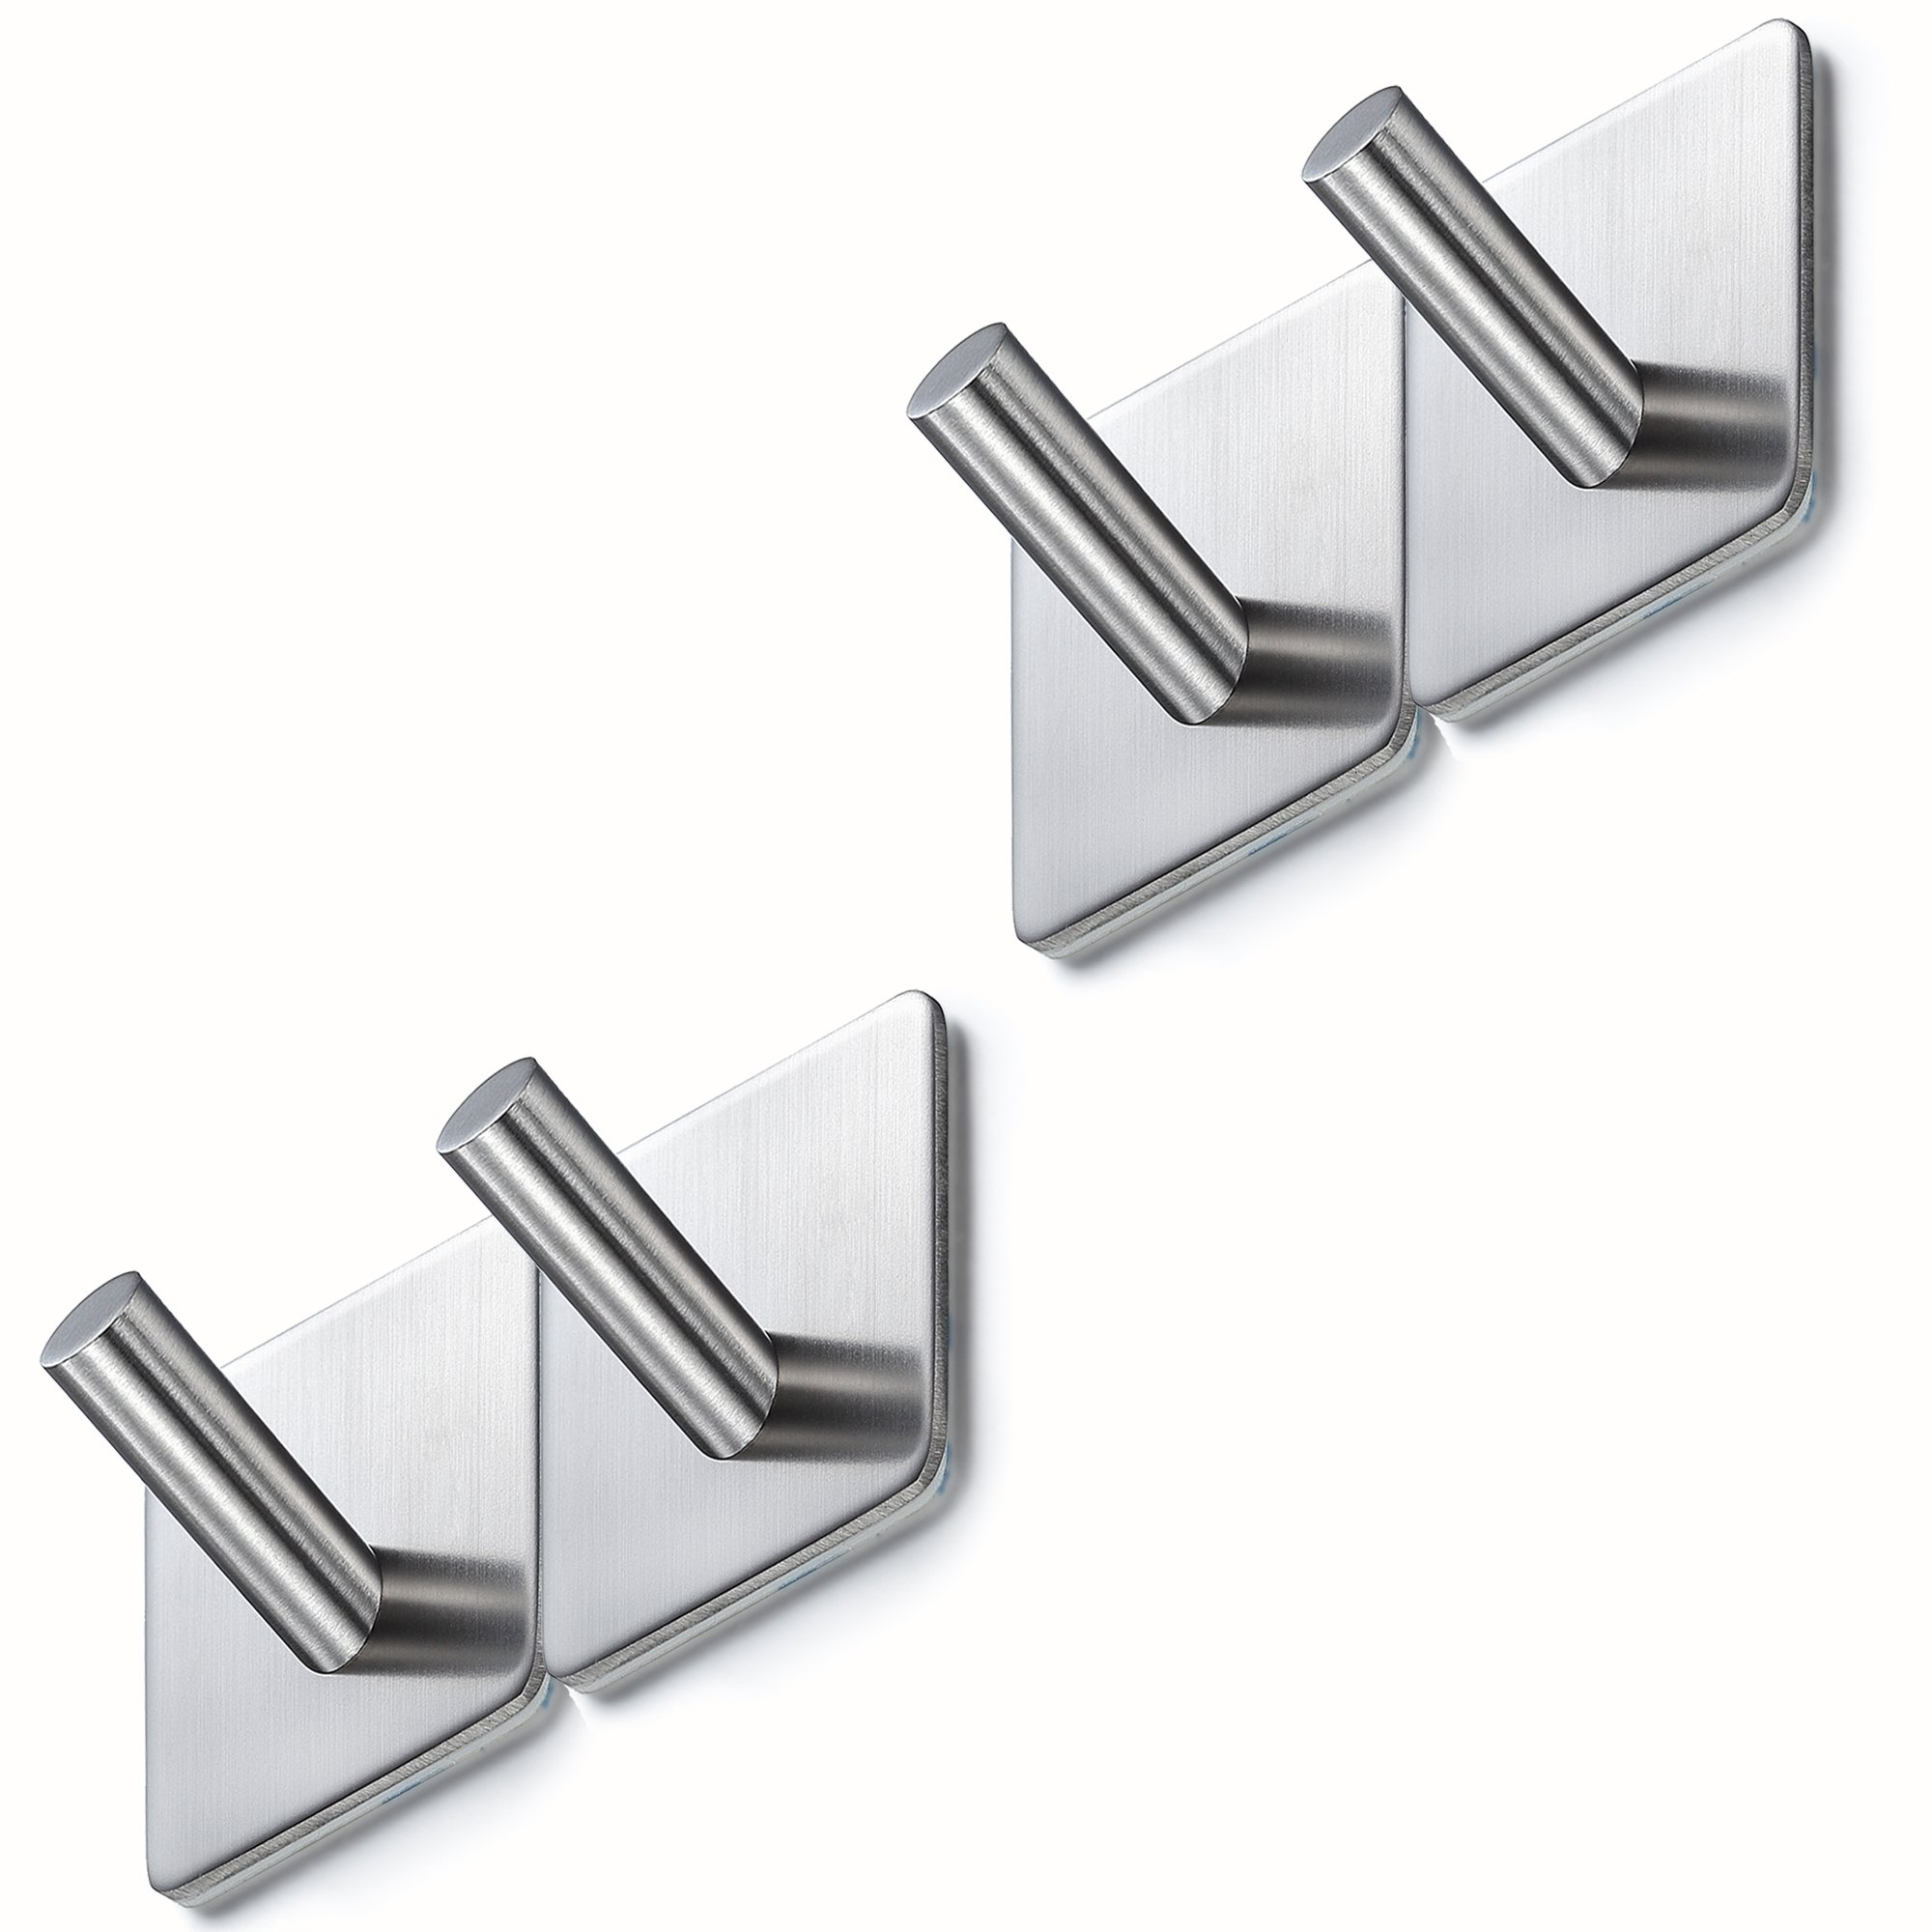 BasicForm Adhesive Hooks Stainless Steel Ultra Strong 3M Damage Free(4 pack)